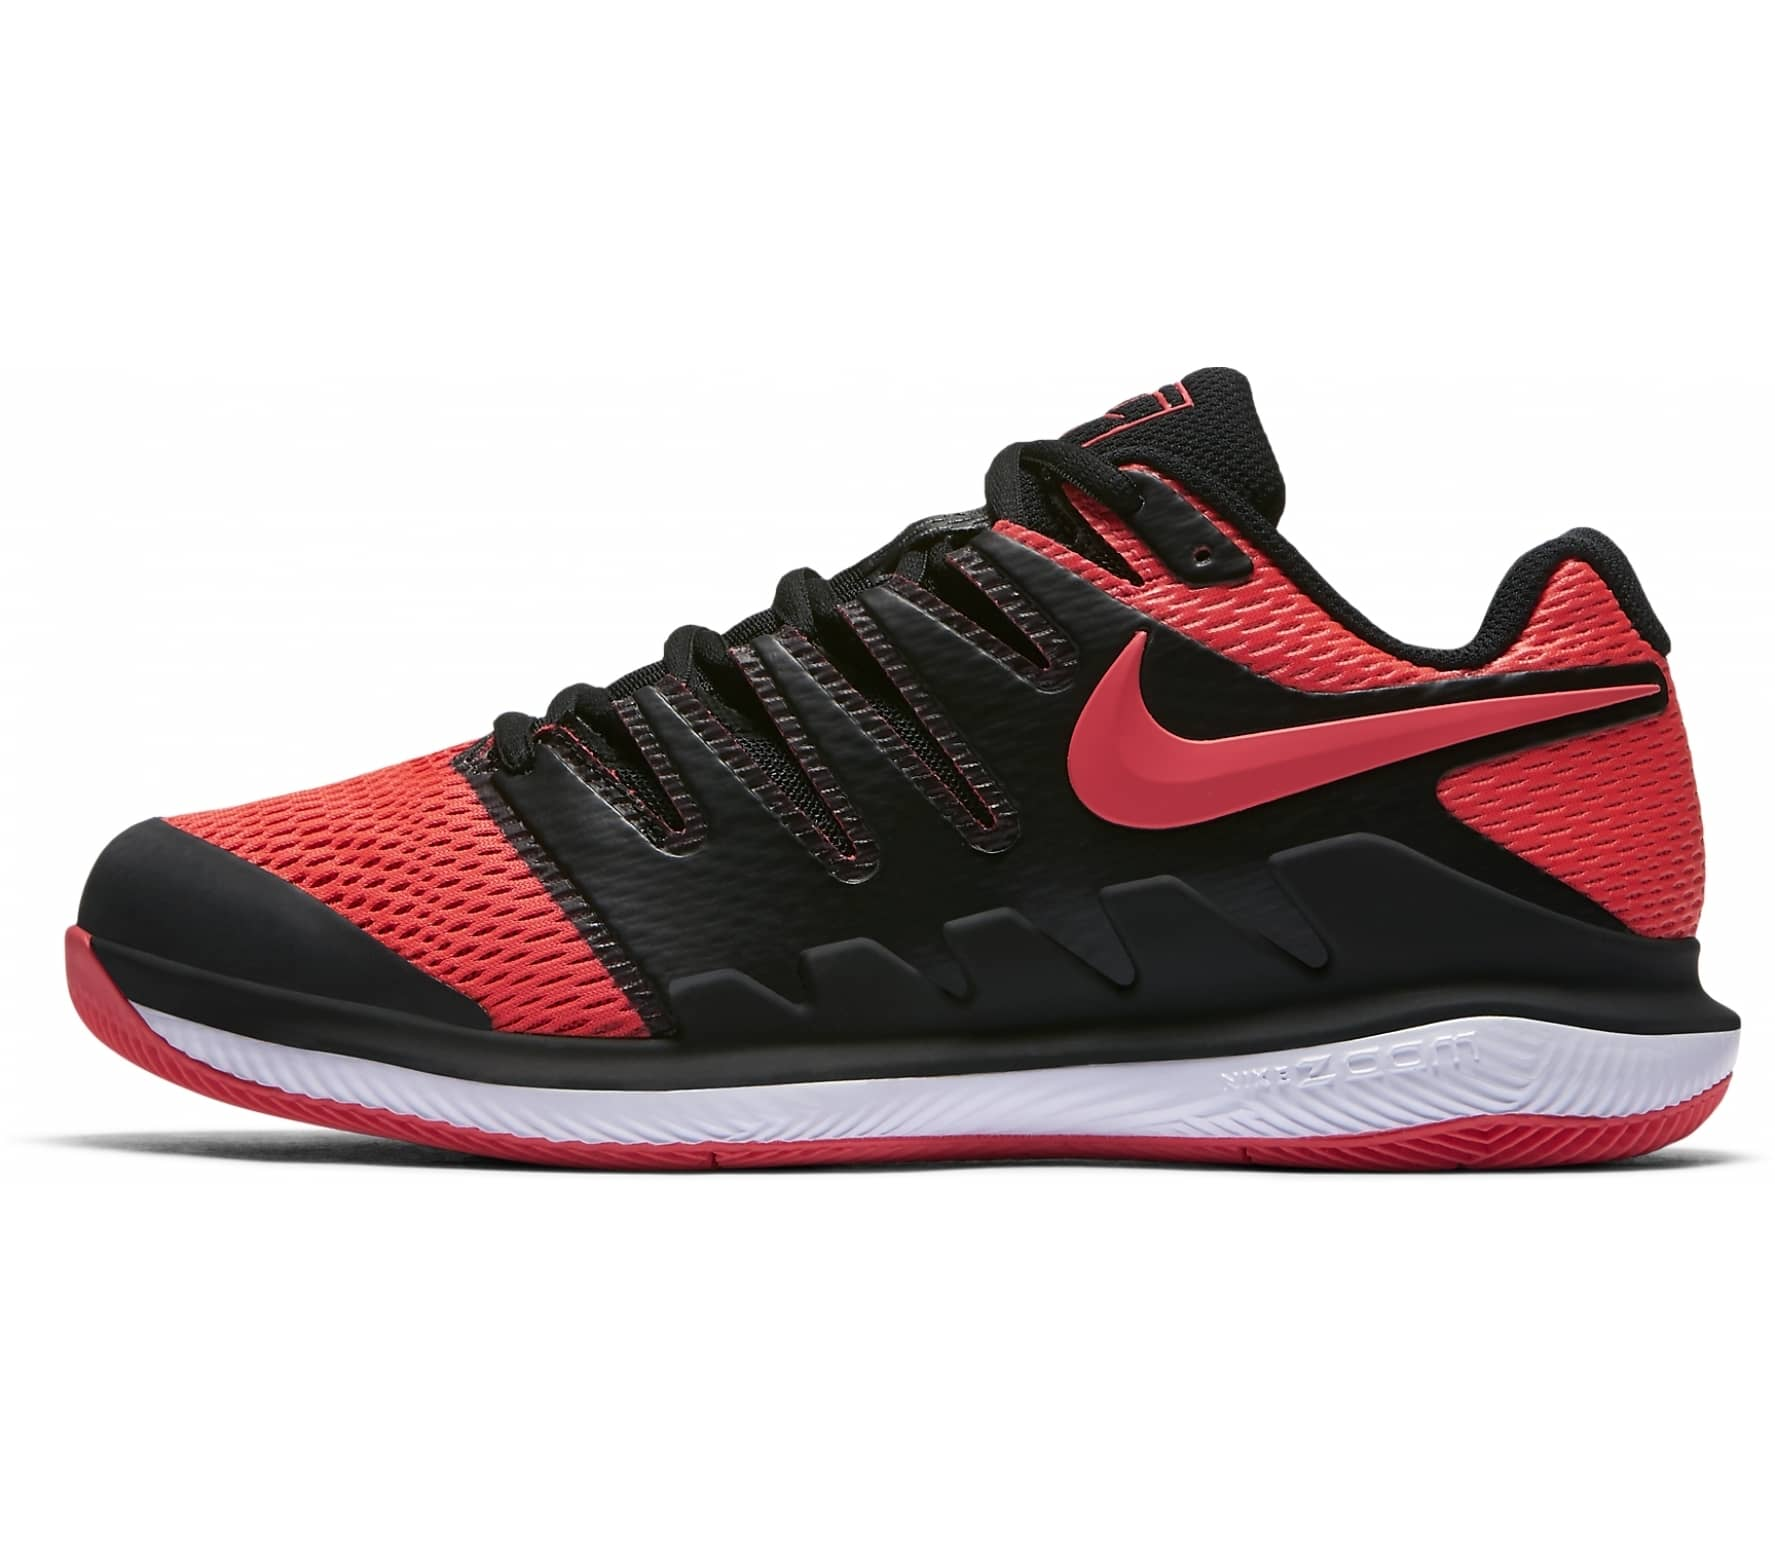 the latest 9cd3f 29d11 Nike - Air Zoom Vapor X Femmes Chaussure de tennis (noir rouge)